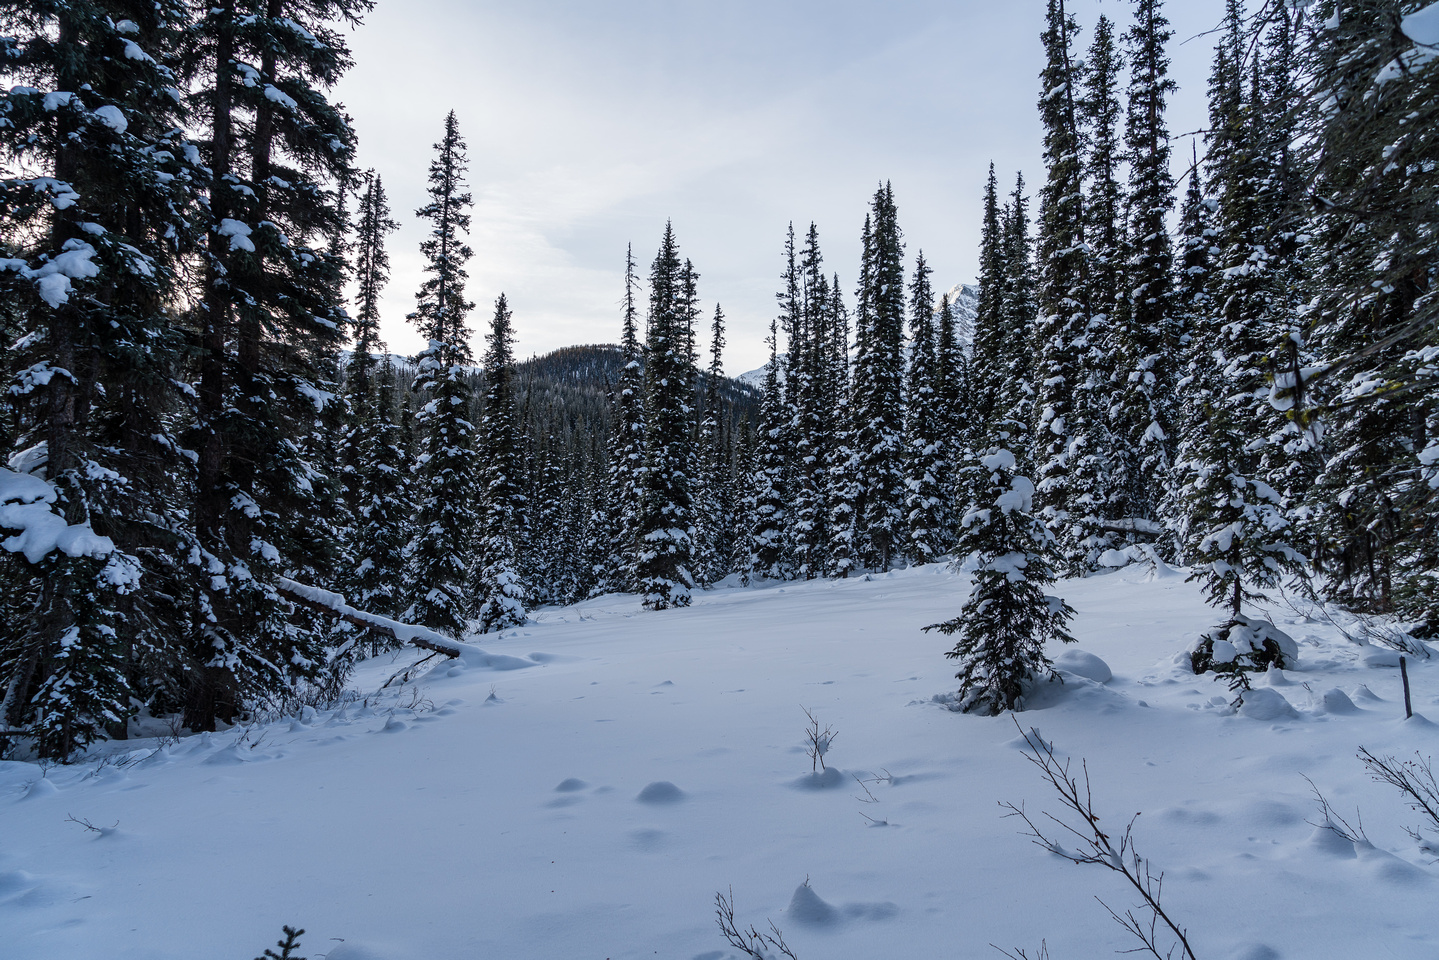 I agreed to start breaking trail up the forested north ridge.